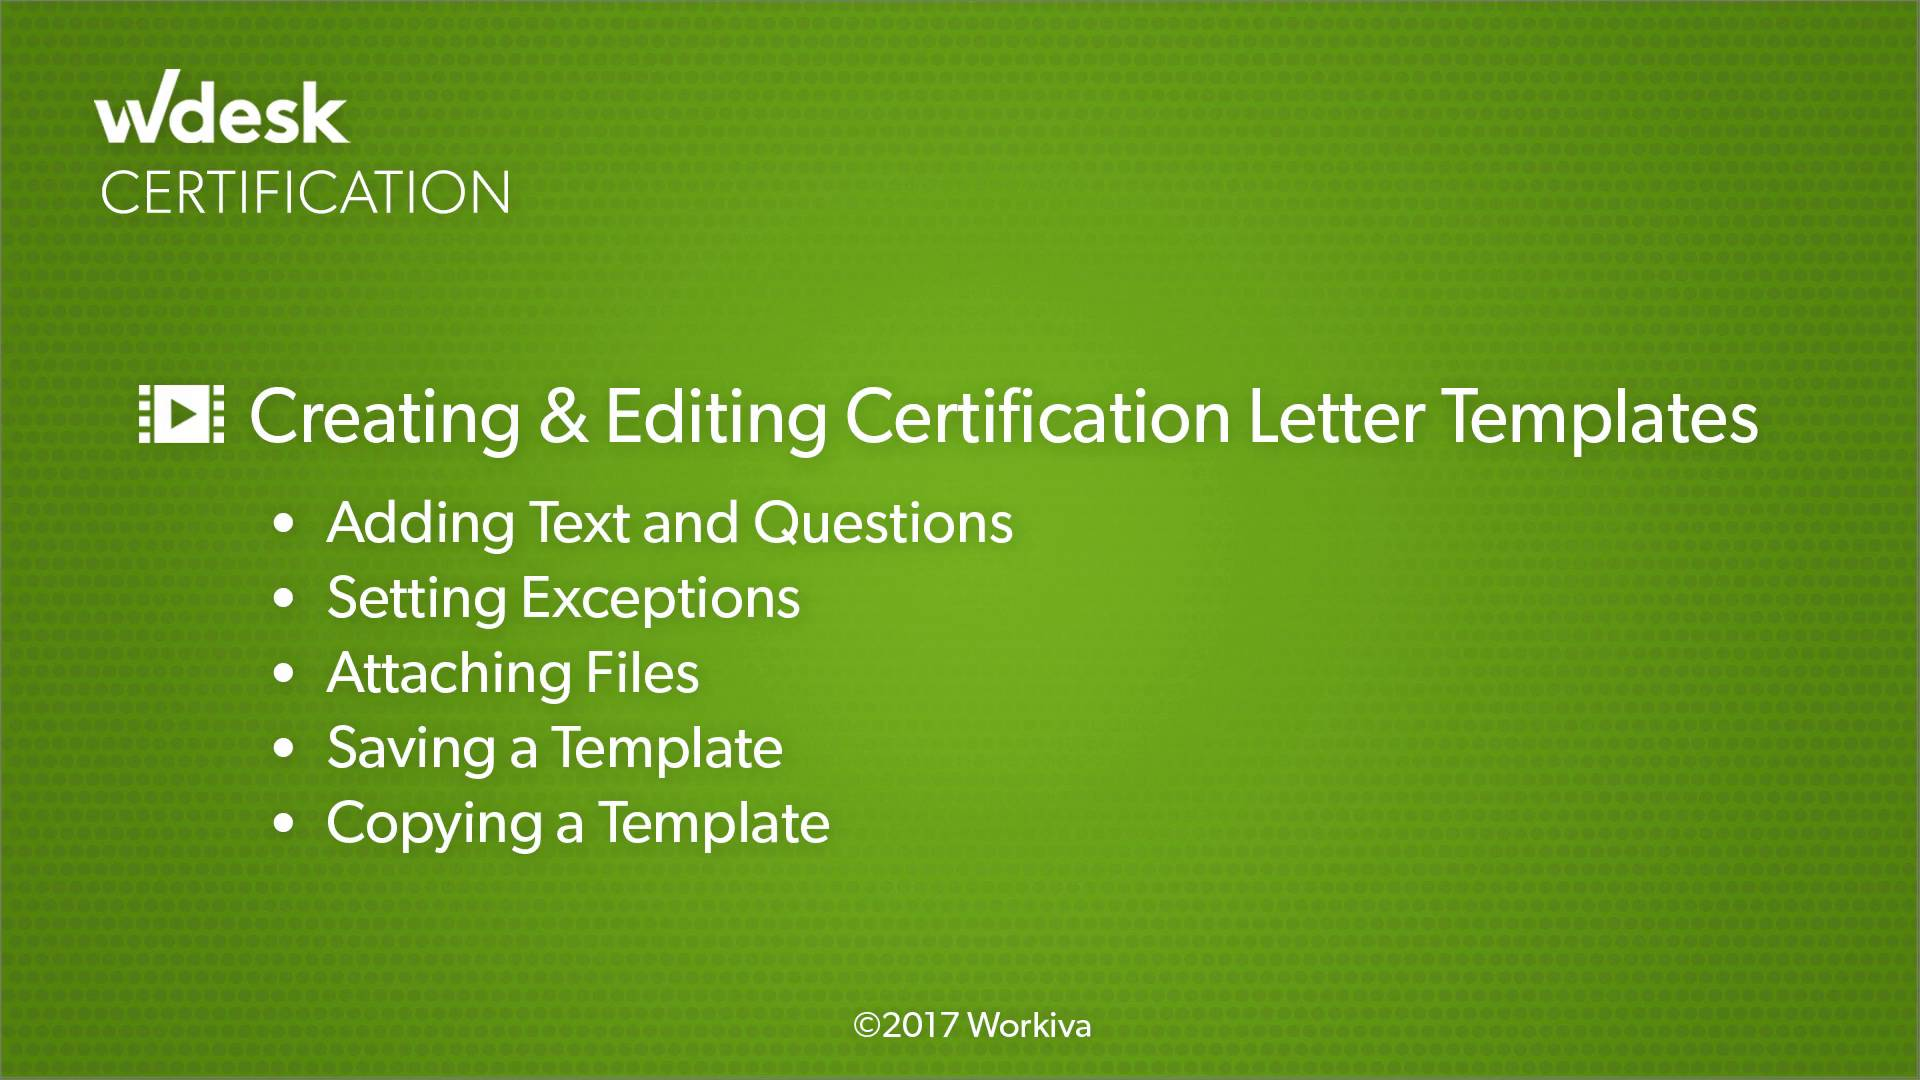 Creating And Editing Certification Letter Templates Wdesk Help